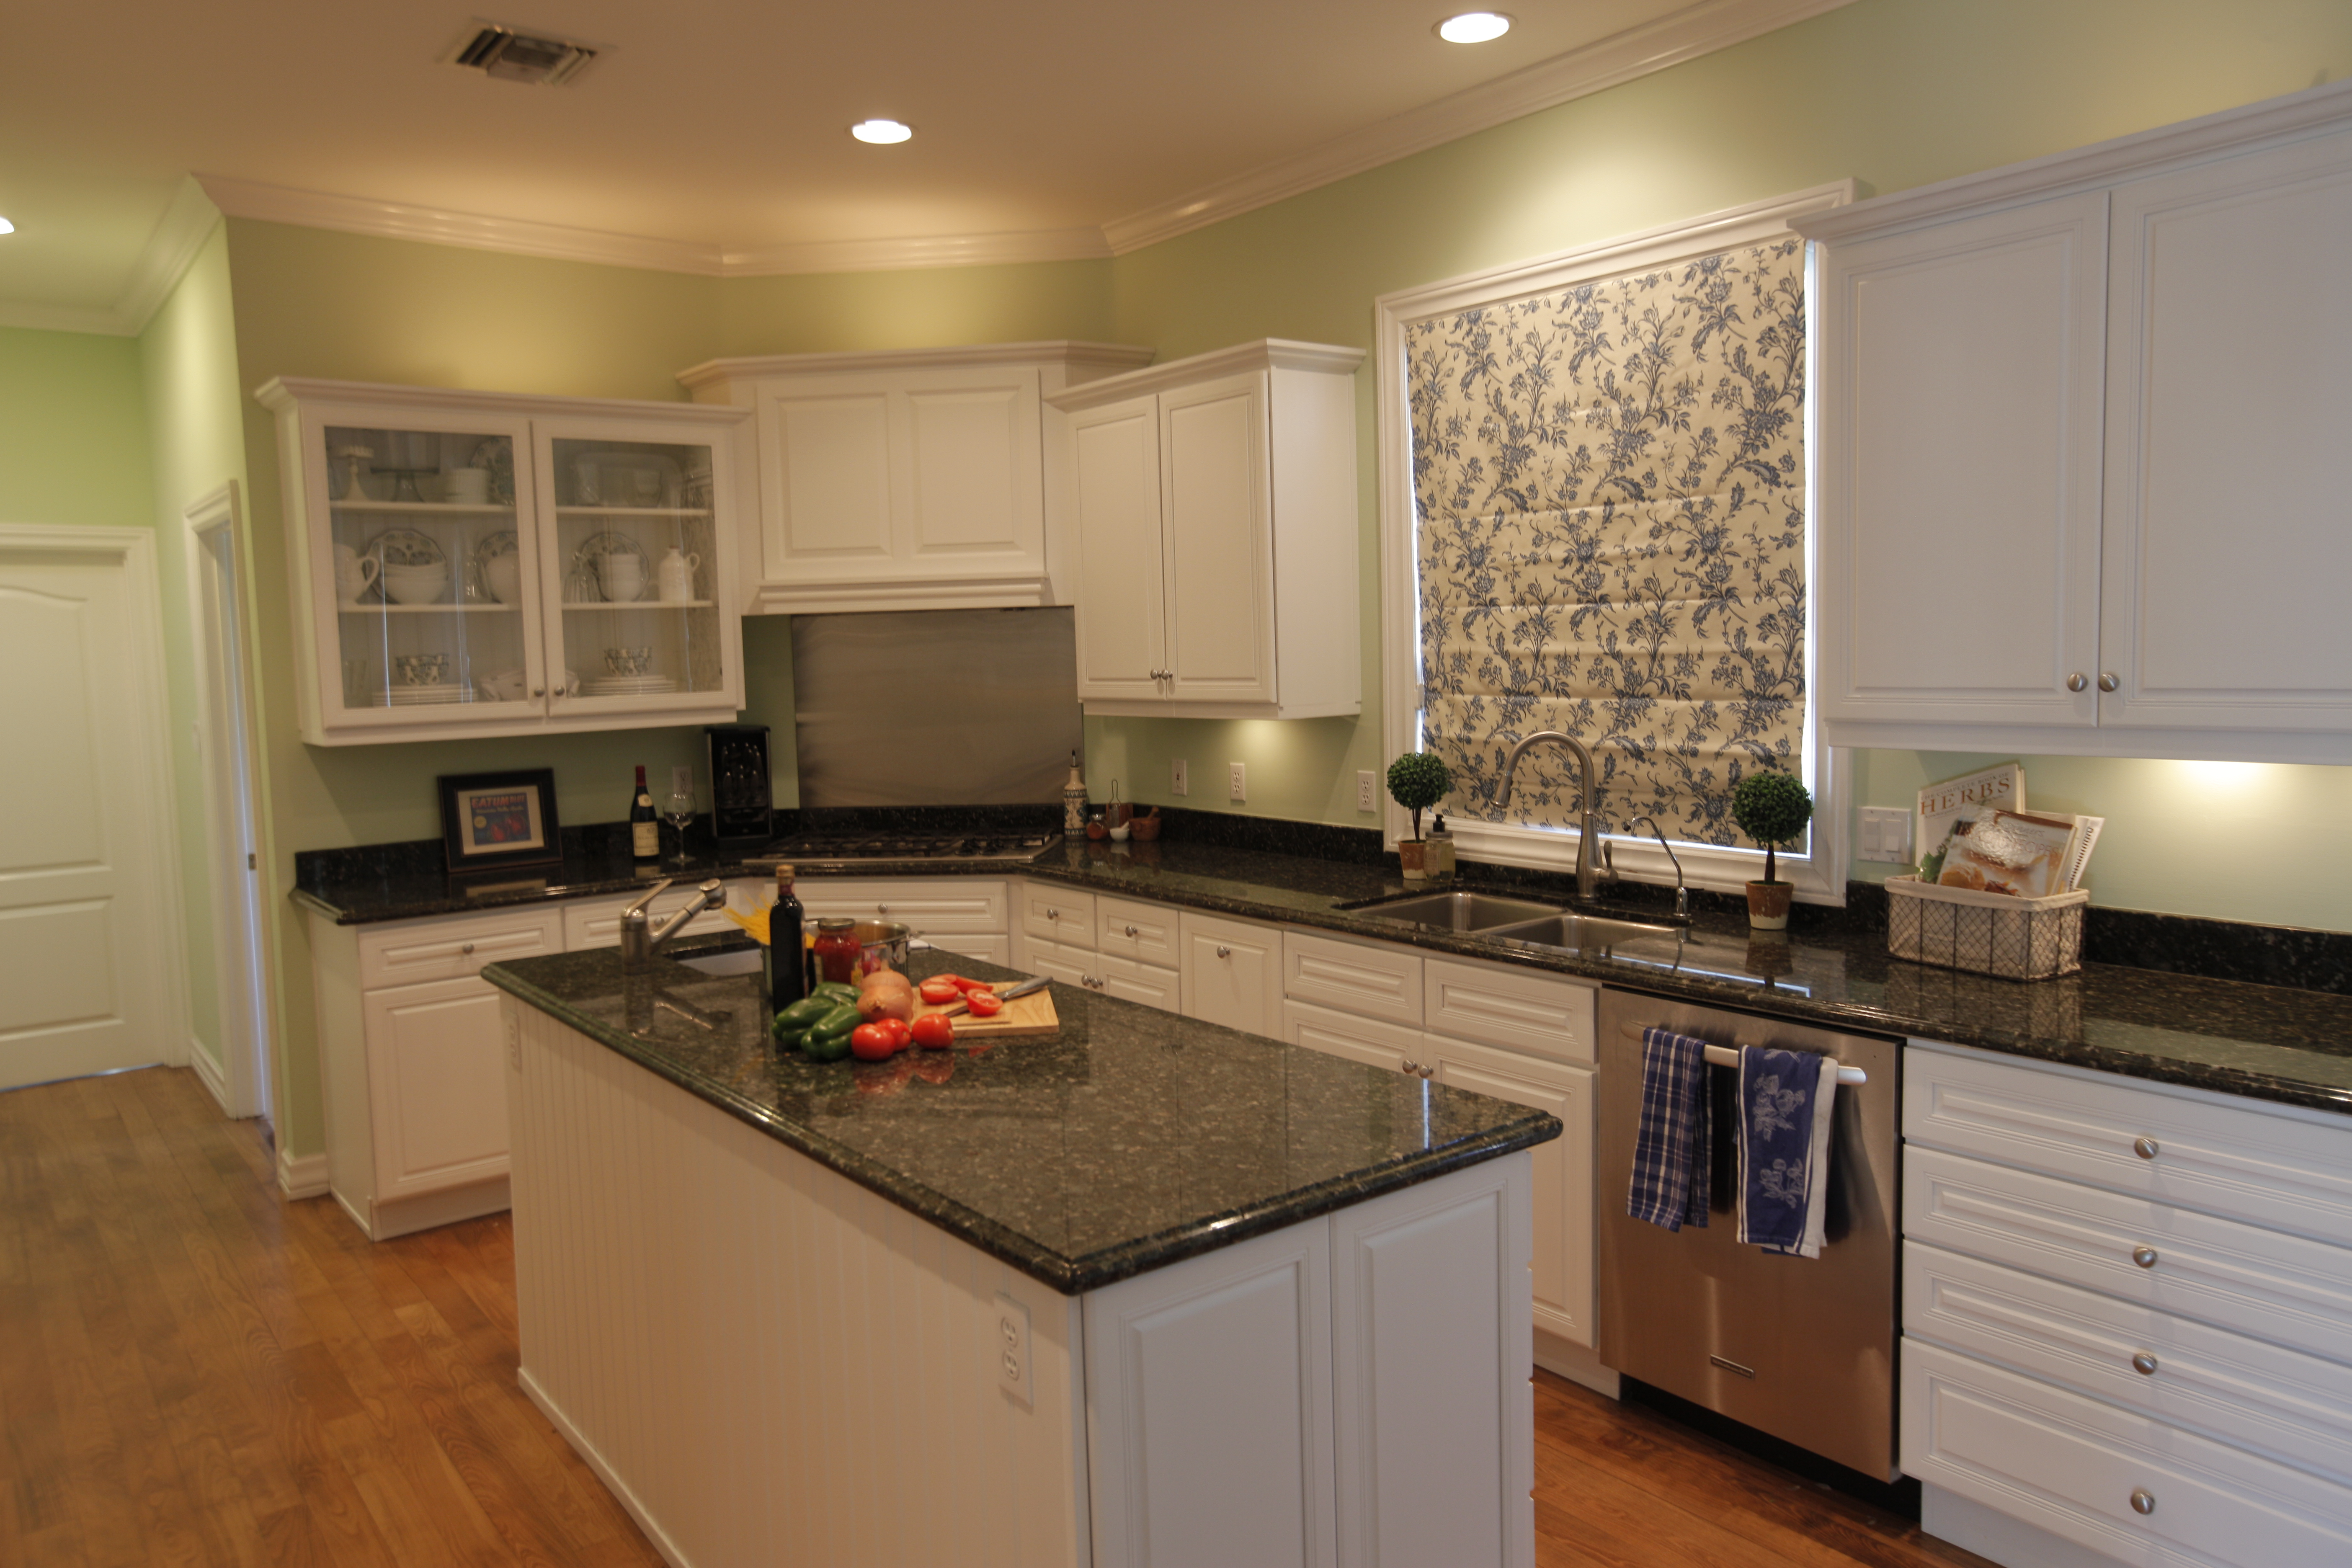 Remodel by brown bird as well as furnishings decor etc for Well decorated kitchen